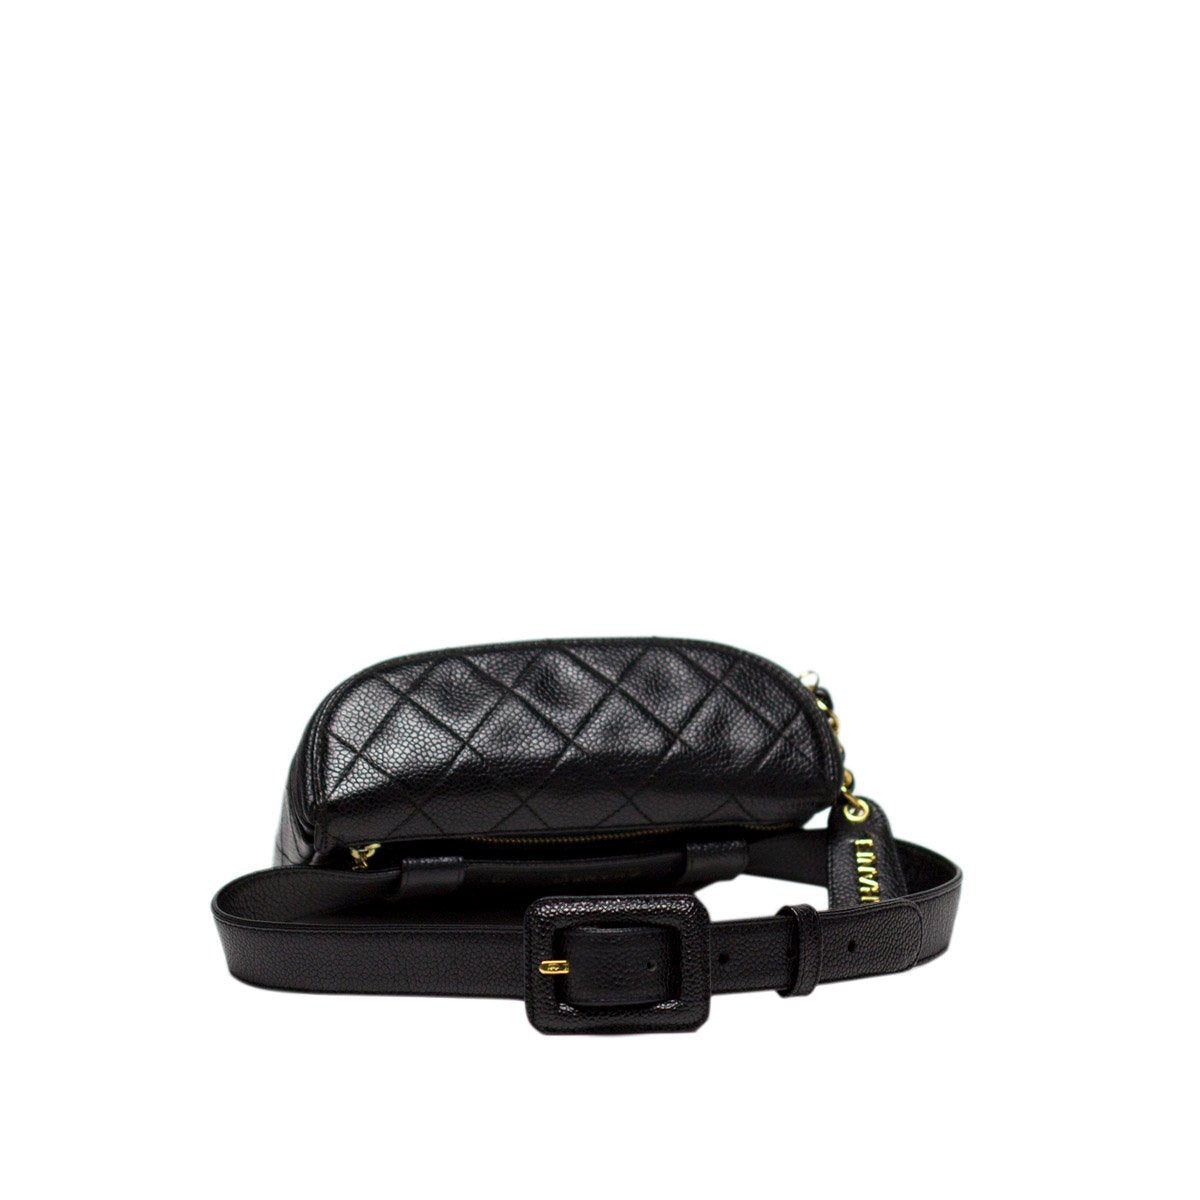 Chanel Classic Caviar Vintage Fanny Pack